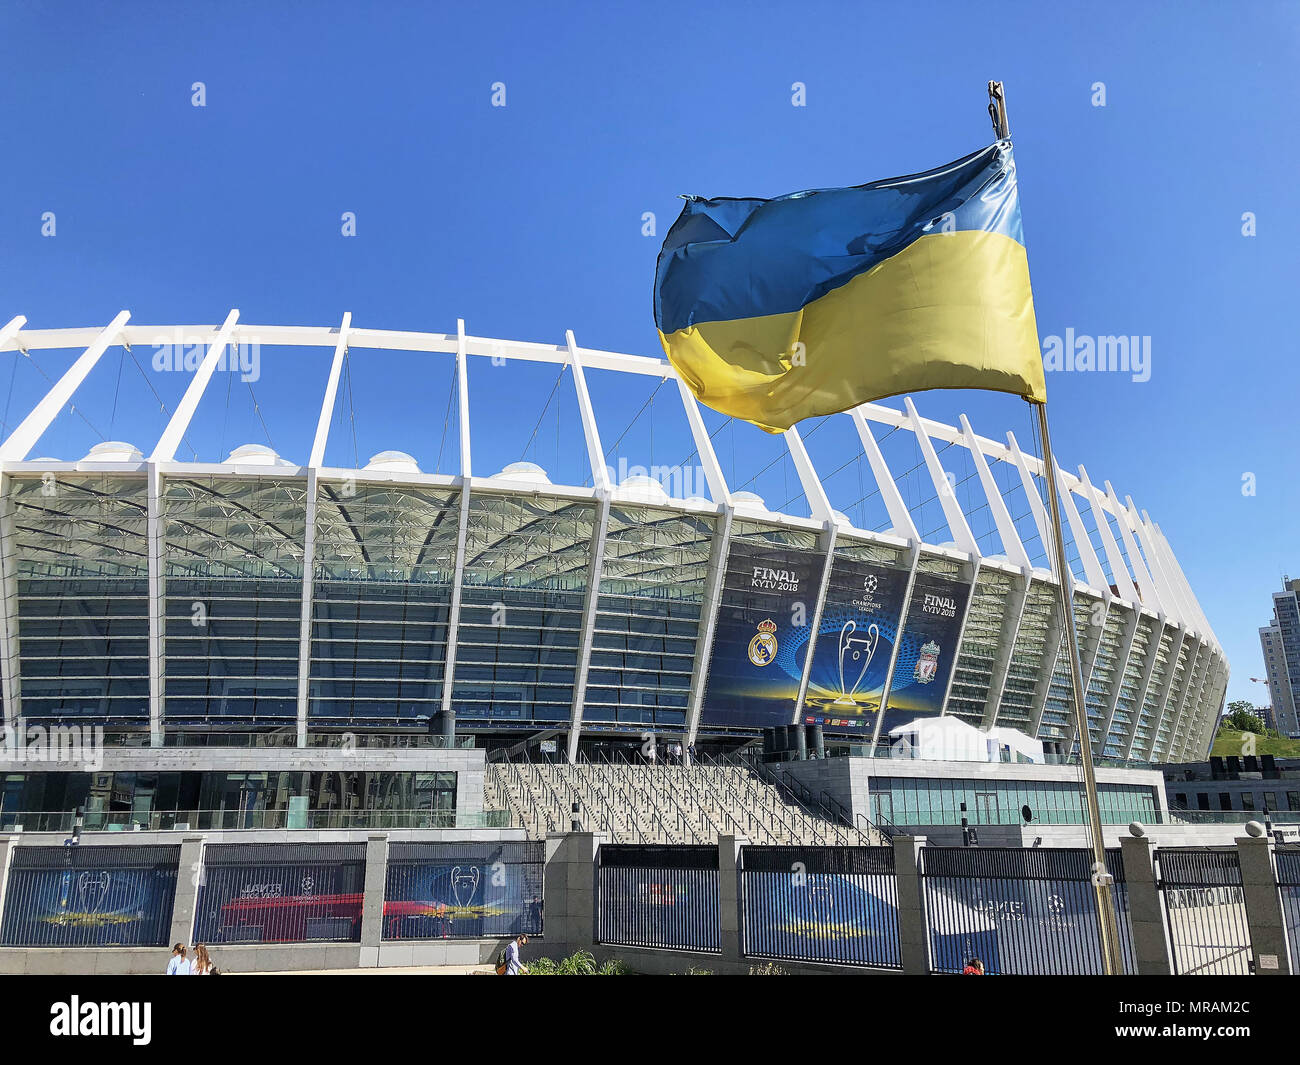 Kiev Ukaine 26 May 2018 Uefa Champions League Finale